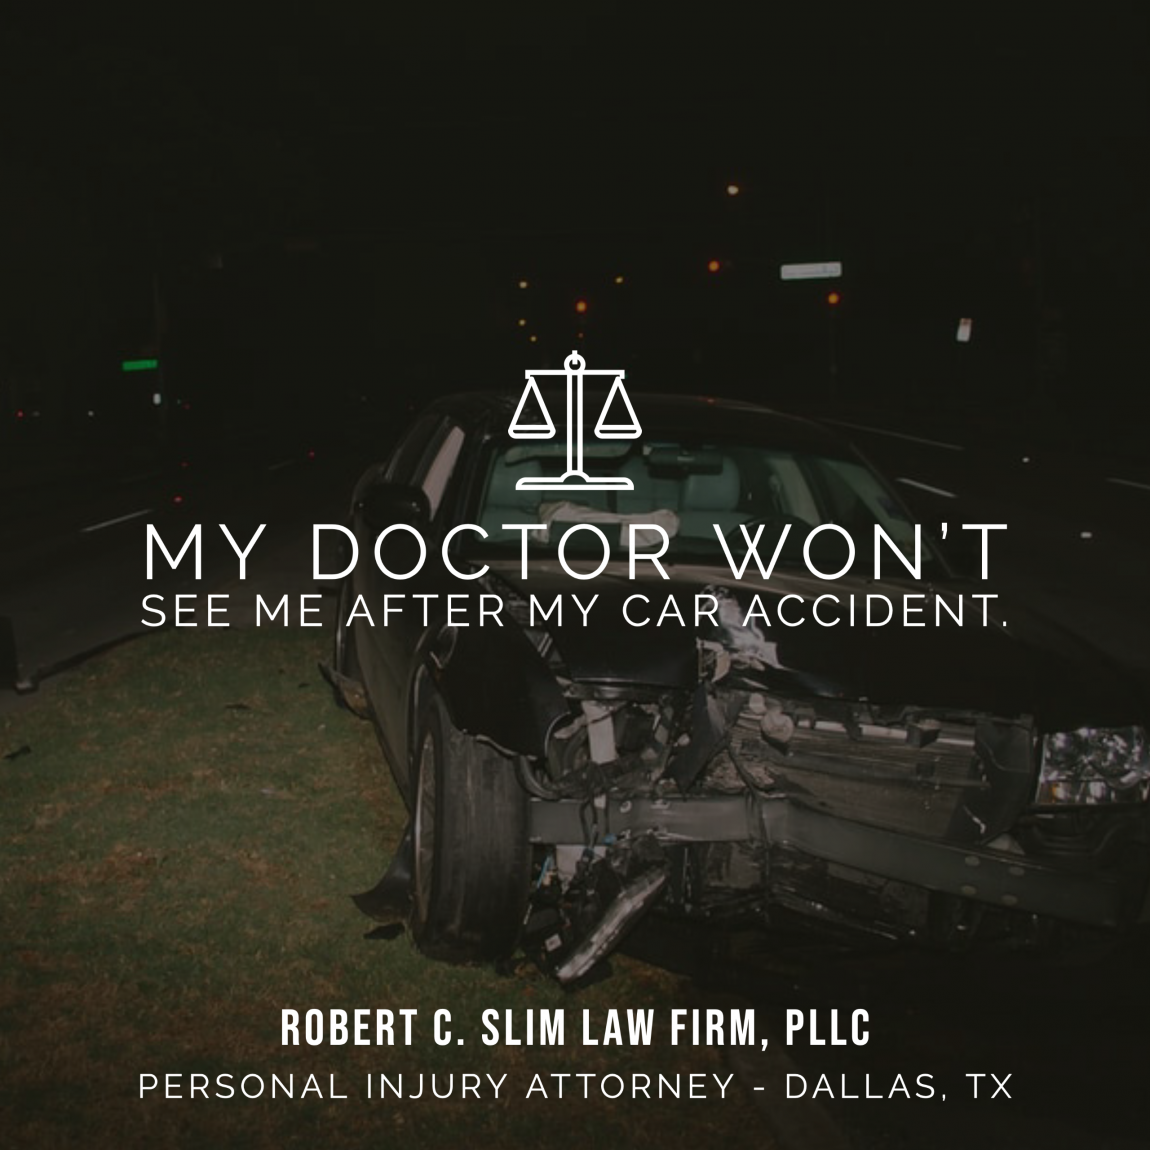 My Doctor Won't See Me After My Car Accident.